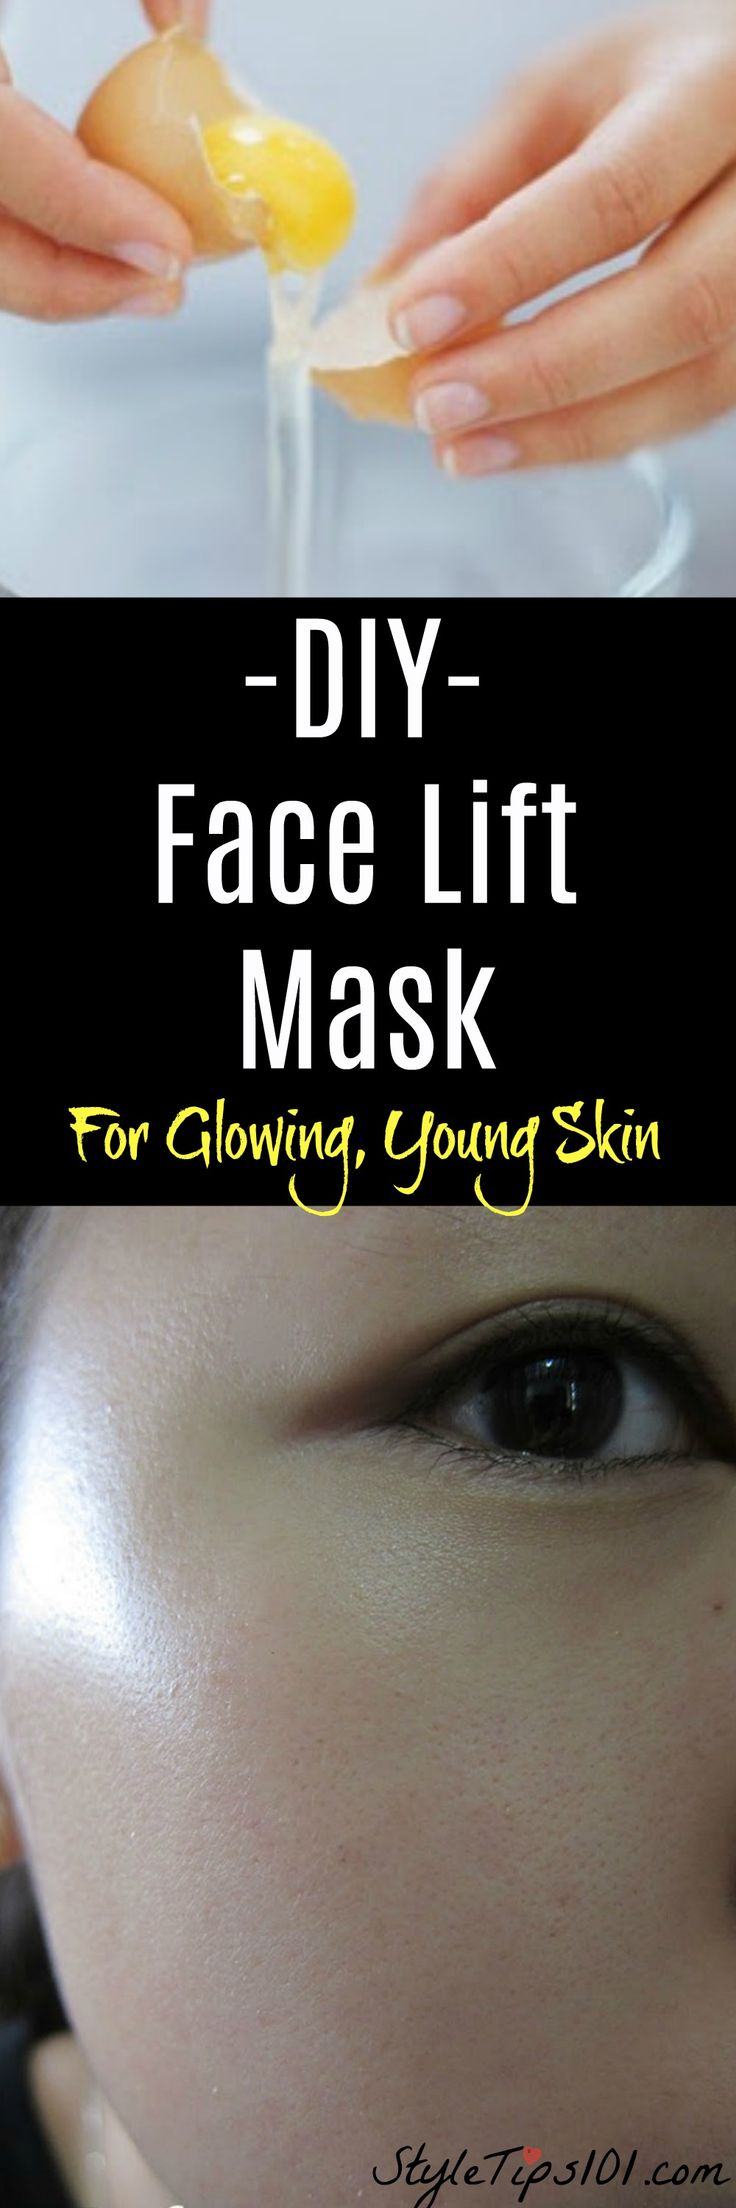 DIY Face Lift Mask